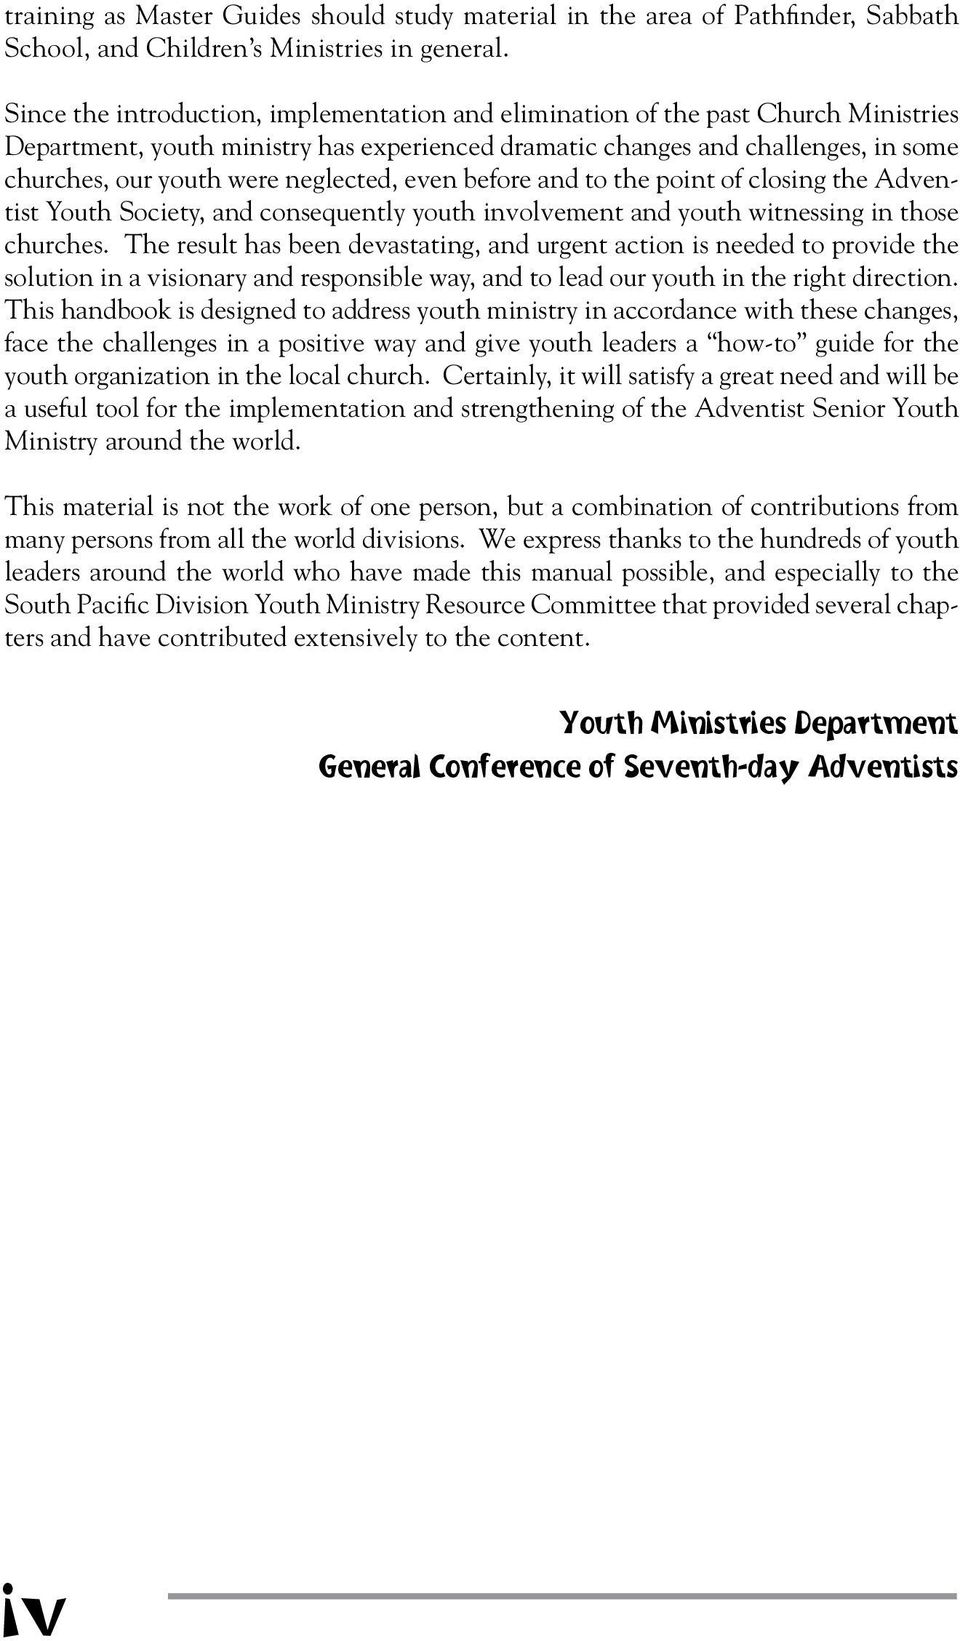 General Conference Of Sda Youth Ministries